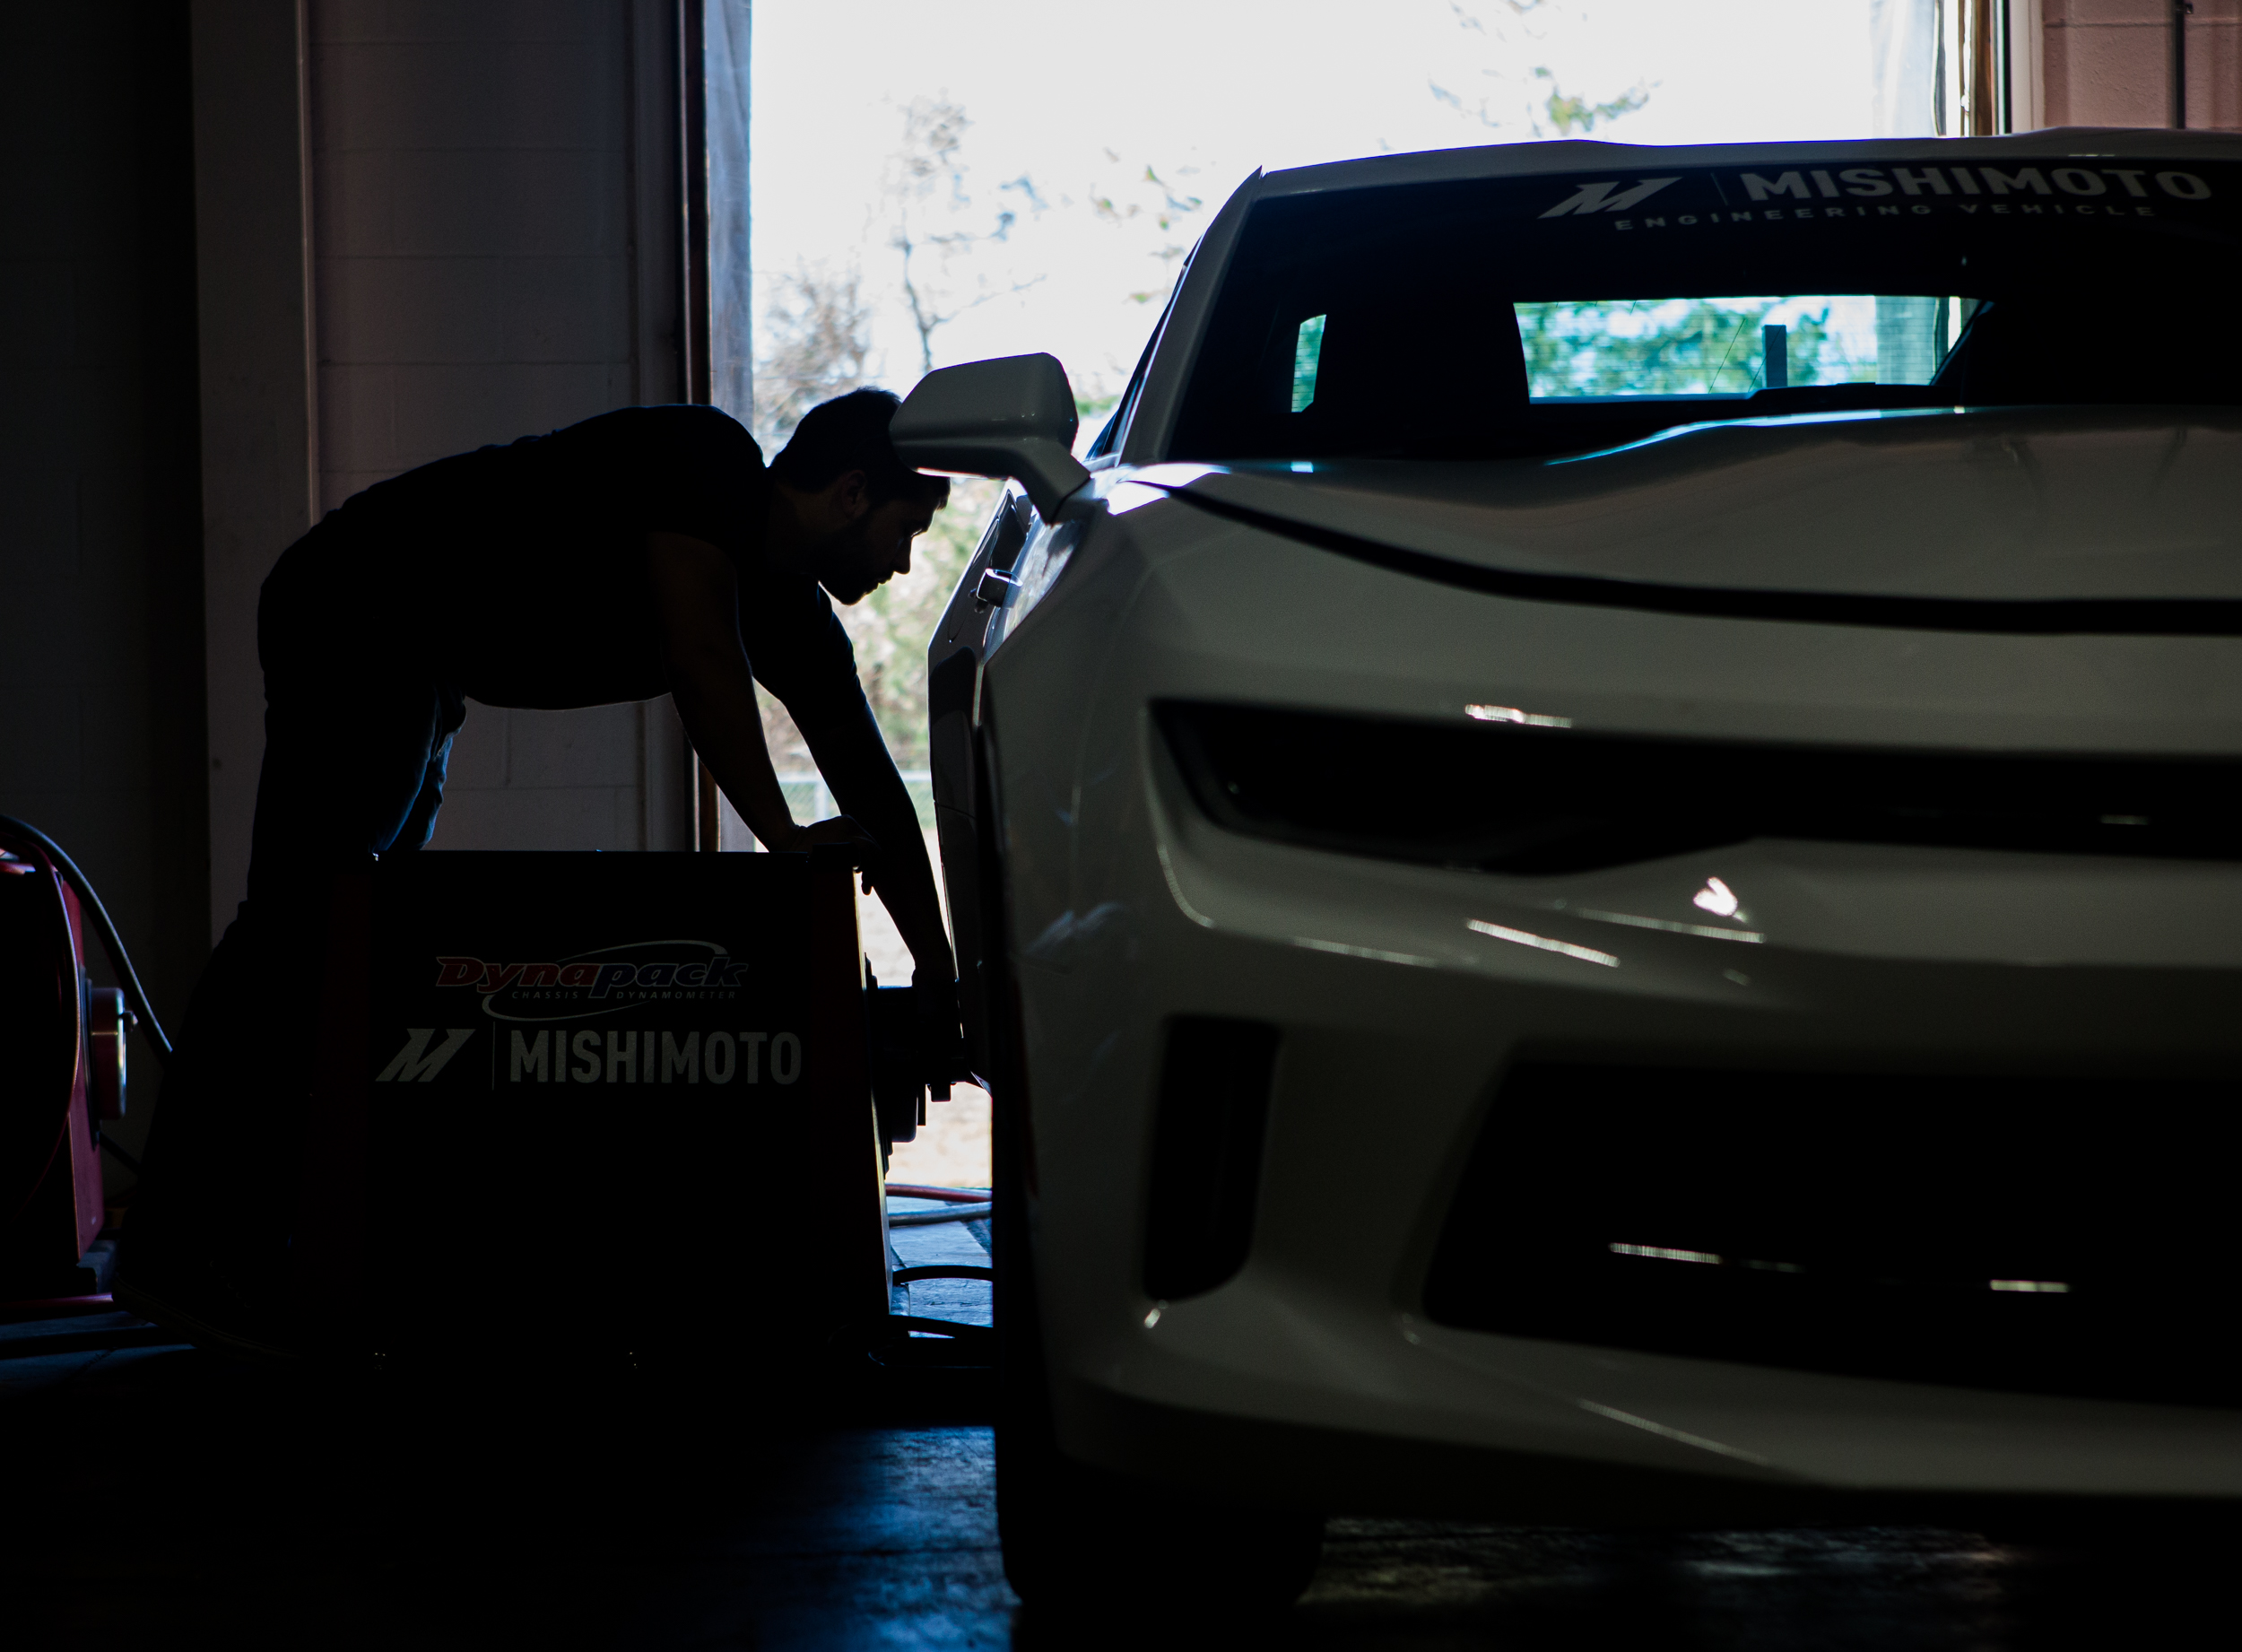 Steve Wiley attaching a dynapack to the rear wheel hub of the 2016 Chevy Camaro 2.0T to test the efficiency of the Mishimoto performance radiator. Click on the photo to learn about what's been happening with this project.